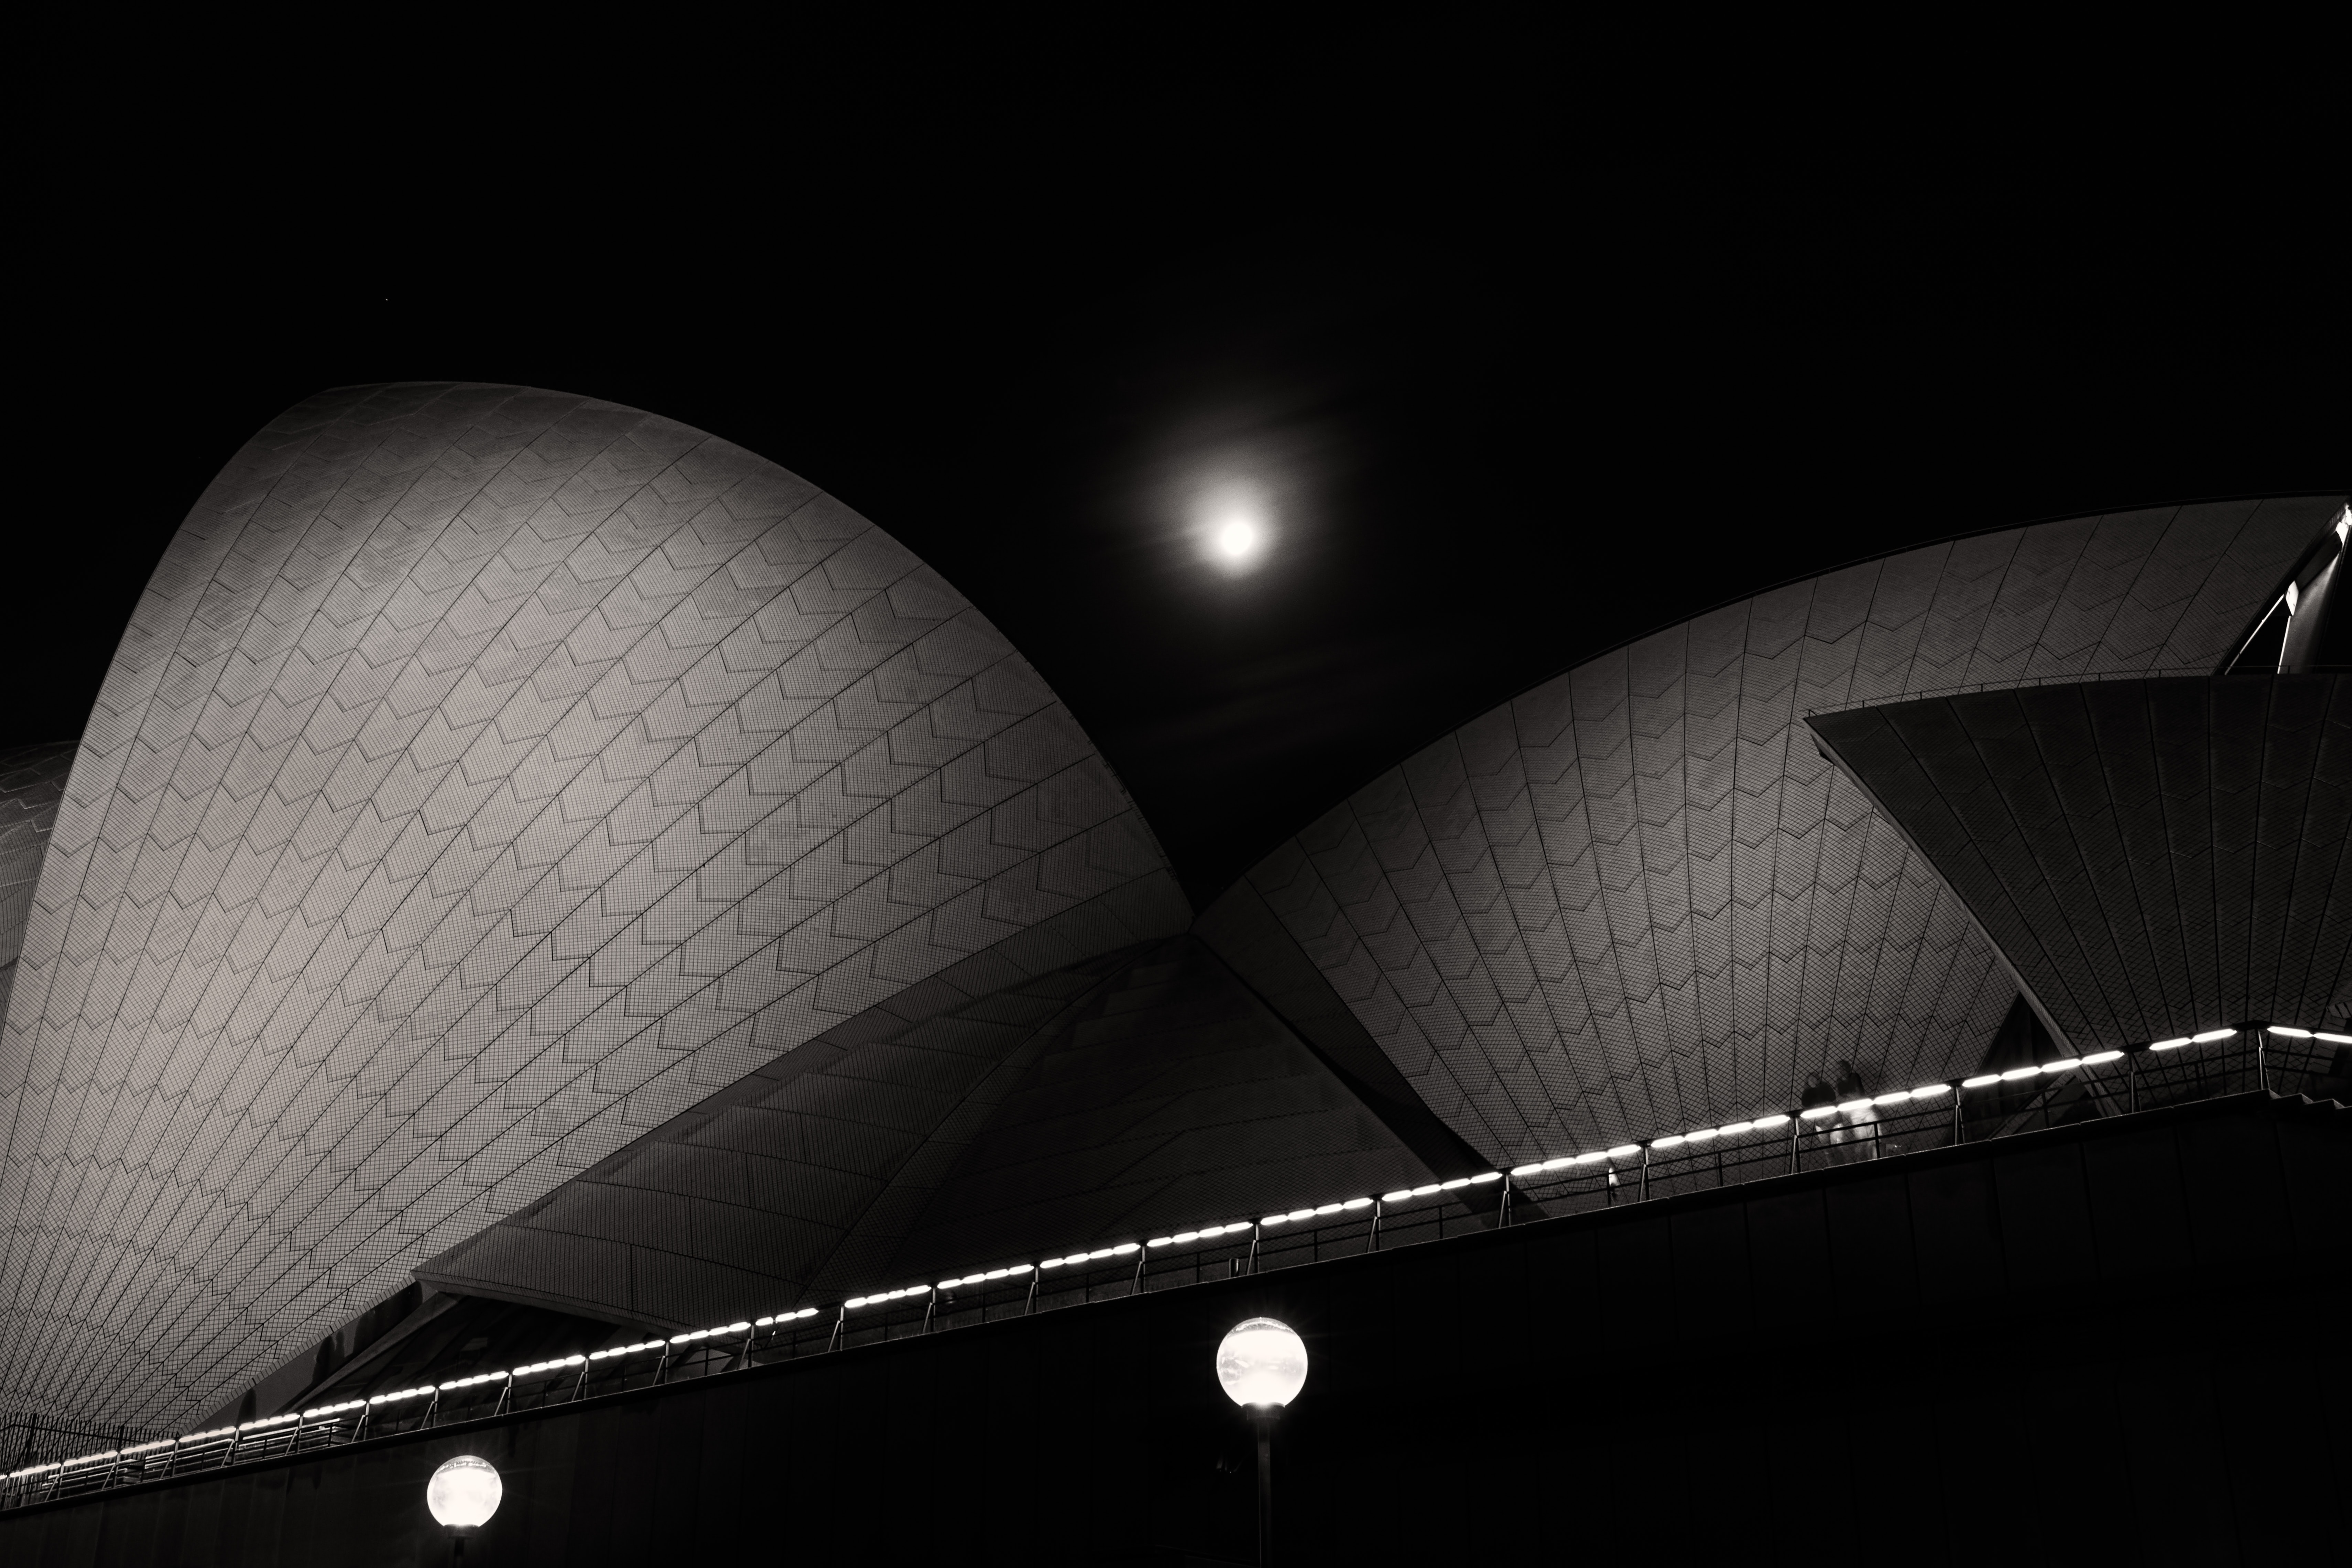 grayscale photography of structure